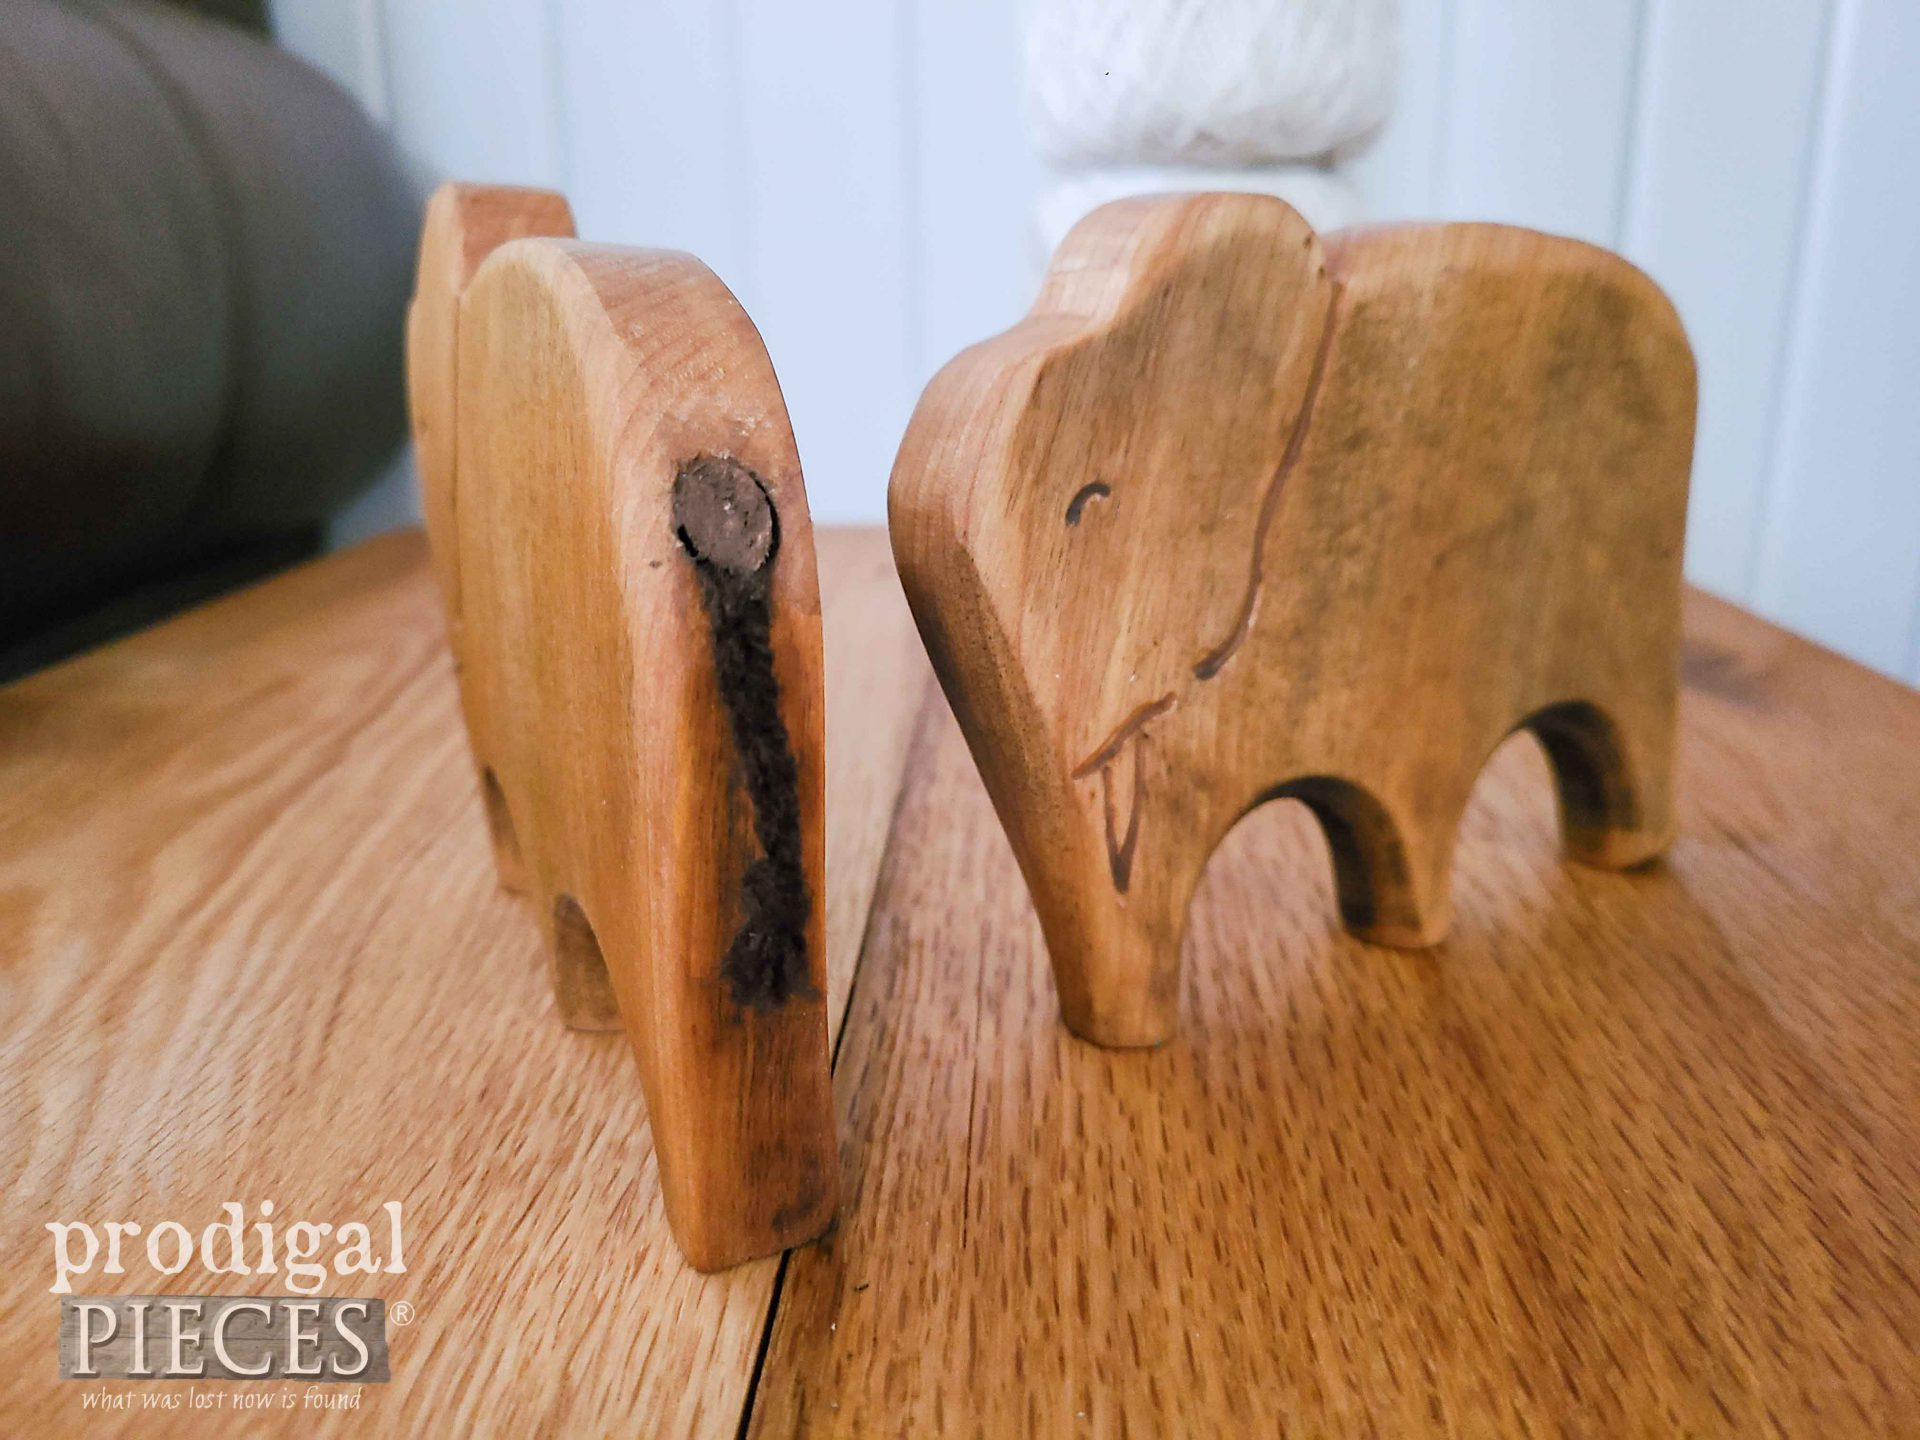 Braided Elephant Tails in Hand Carved Elephants by Larissa of Prodigal Pieces | prodigalpieces.com #prodigalpieces #farmhouse #reclaimed